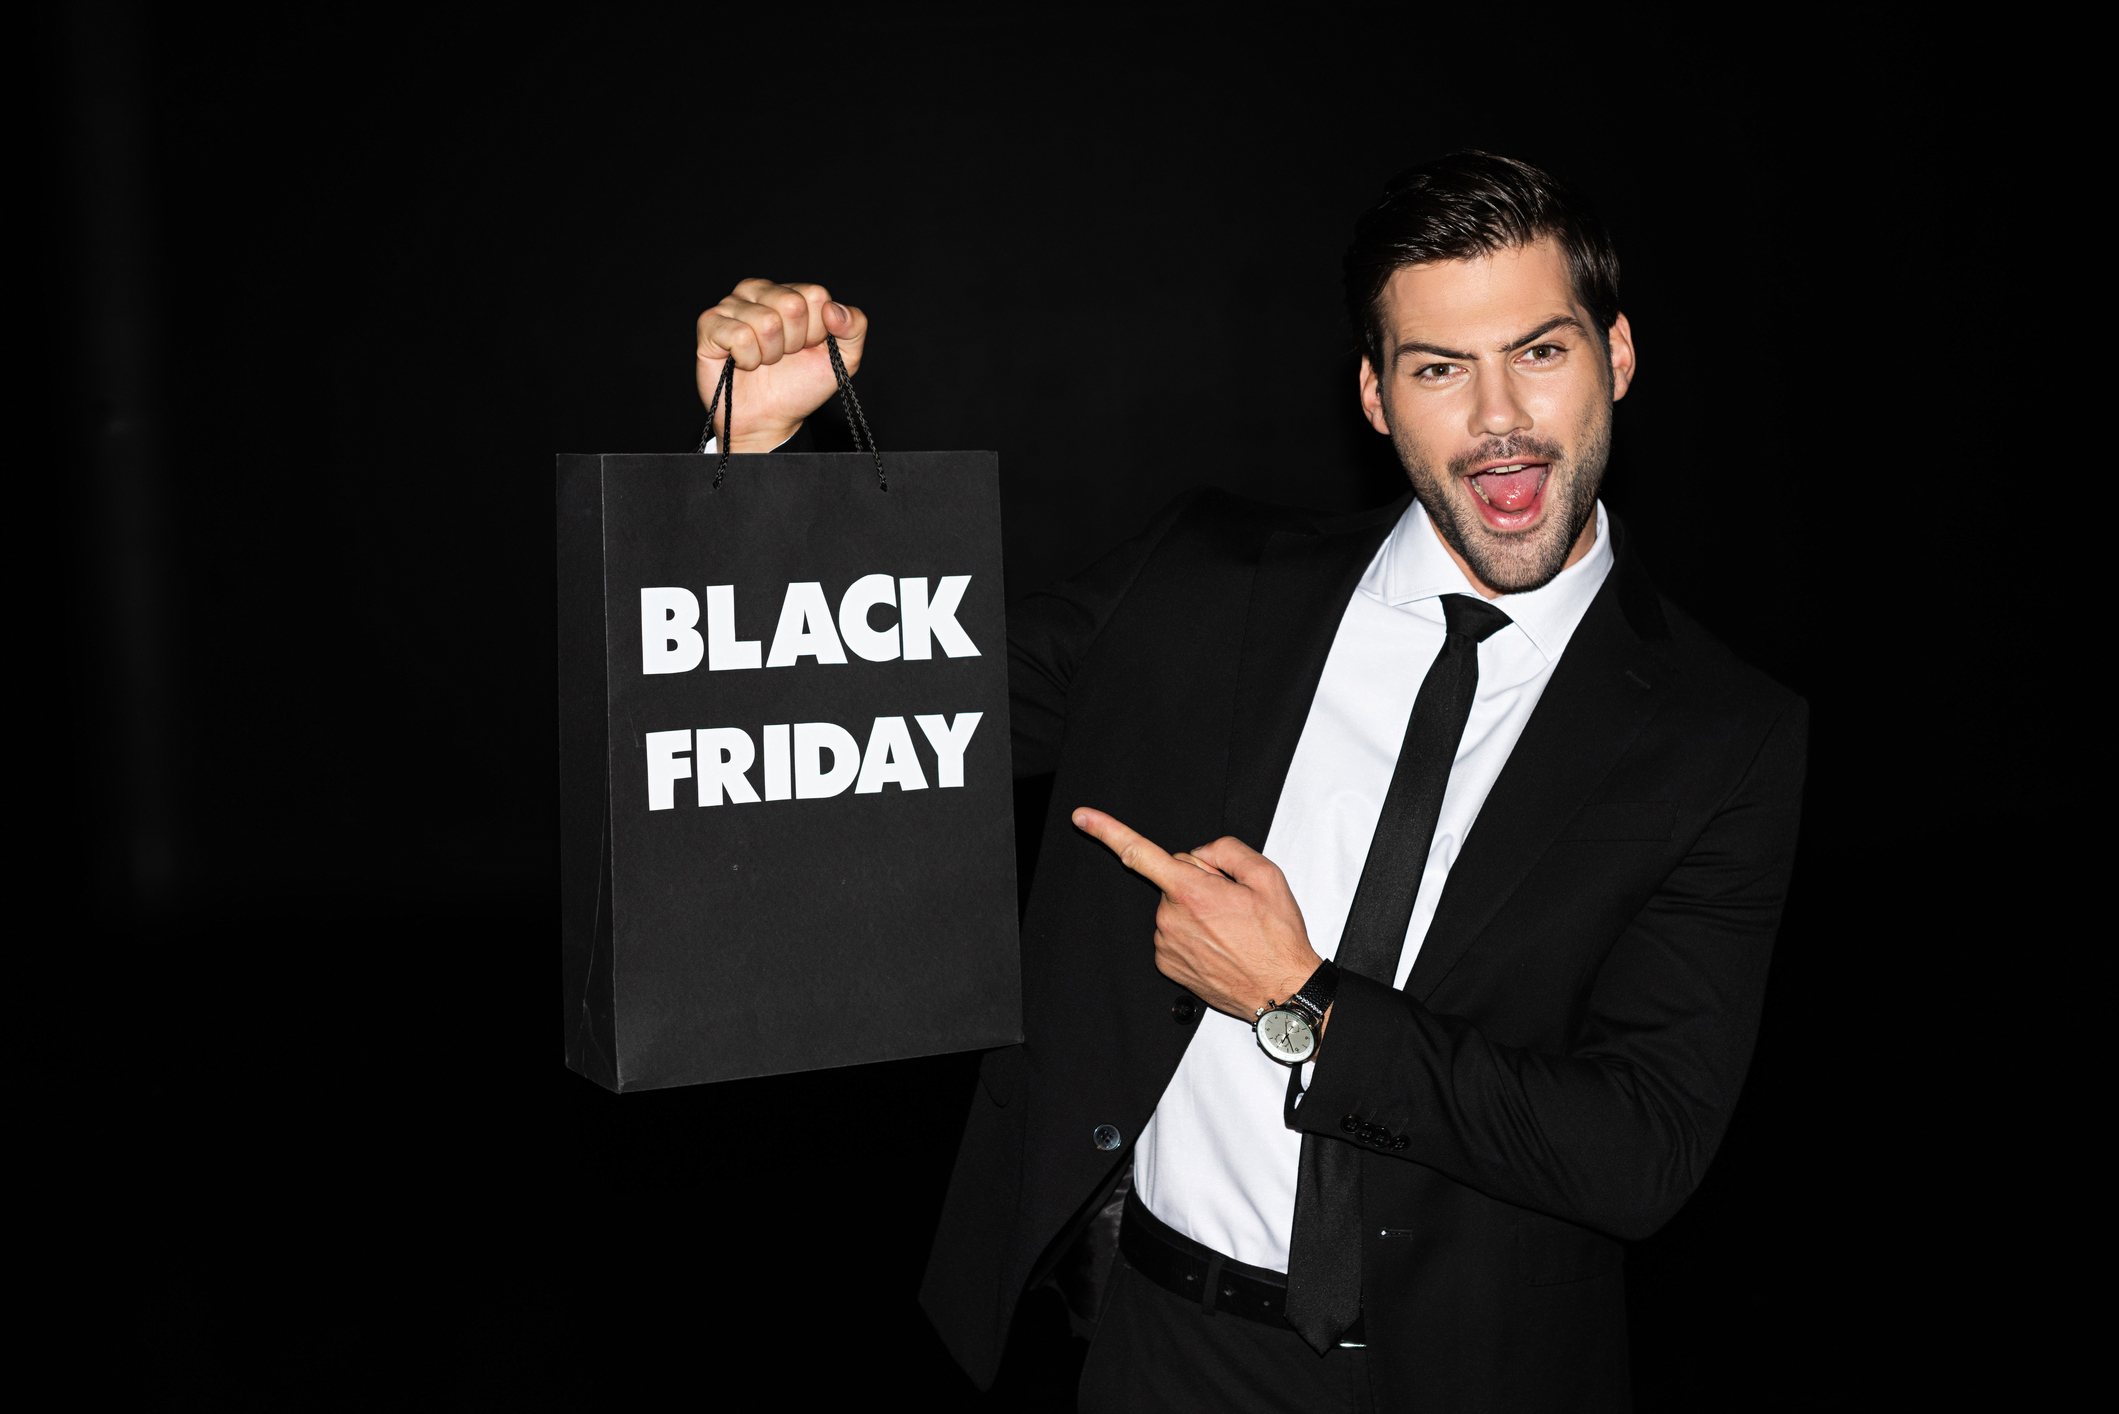 Black Friday GIF-jes (Dit Topic is Gedurende Black Friday Aangevuld)